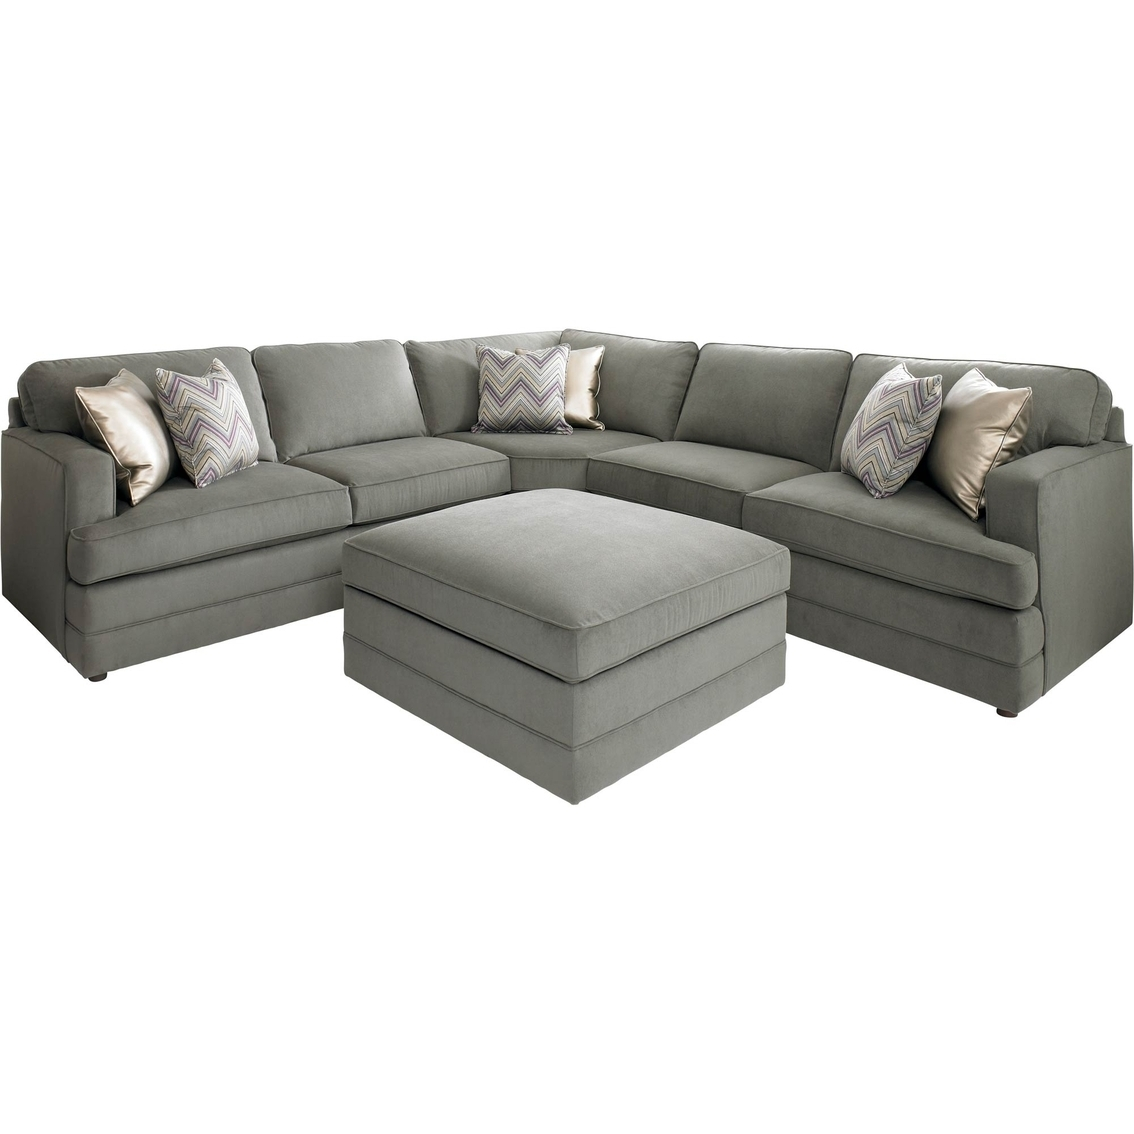 Bassett Dalton L Shaped Sectional Sofa With Ottoman | Making Our Regarding Sectional Sofas At Bassett (Image 1 of 10)